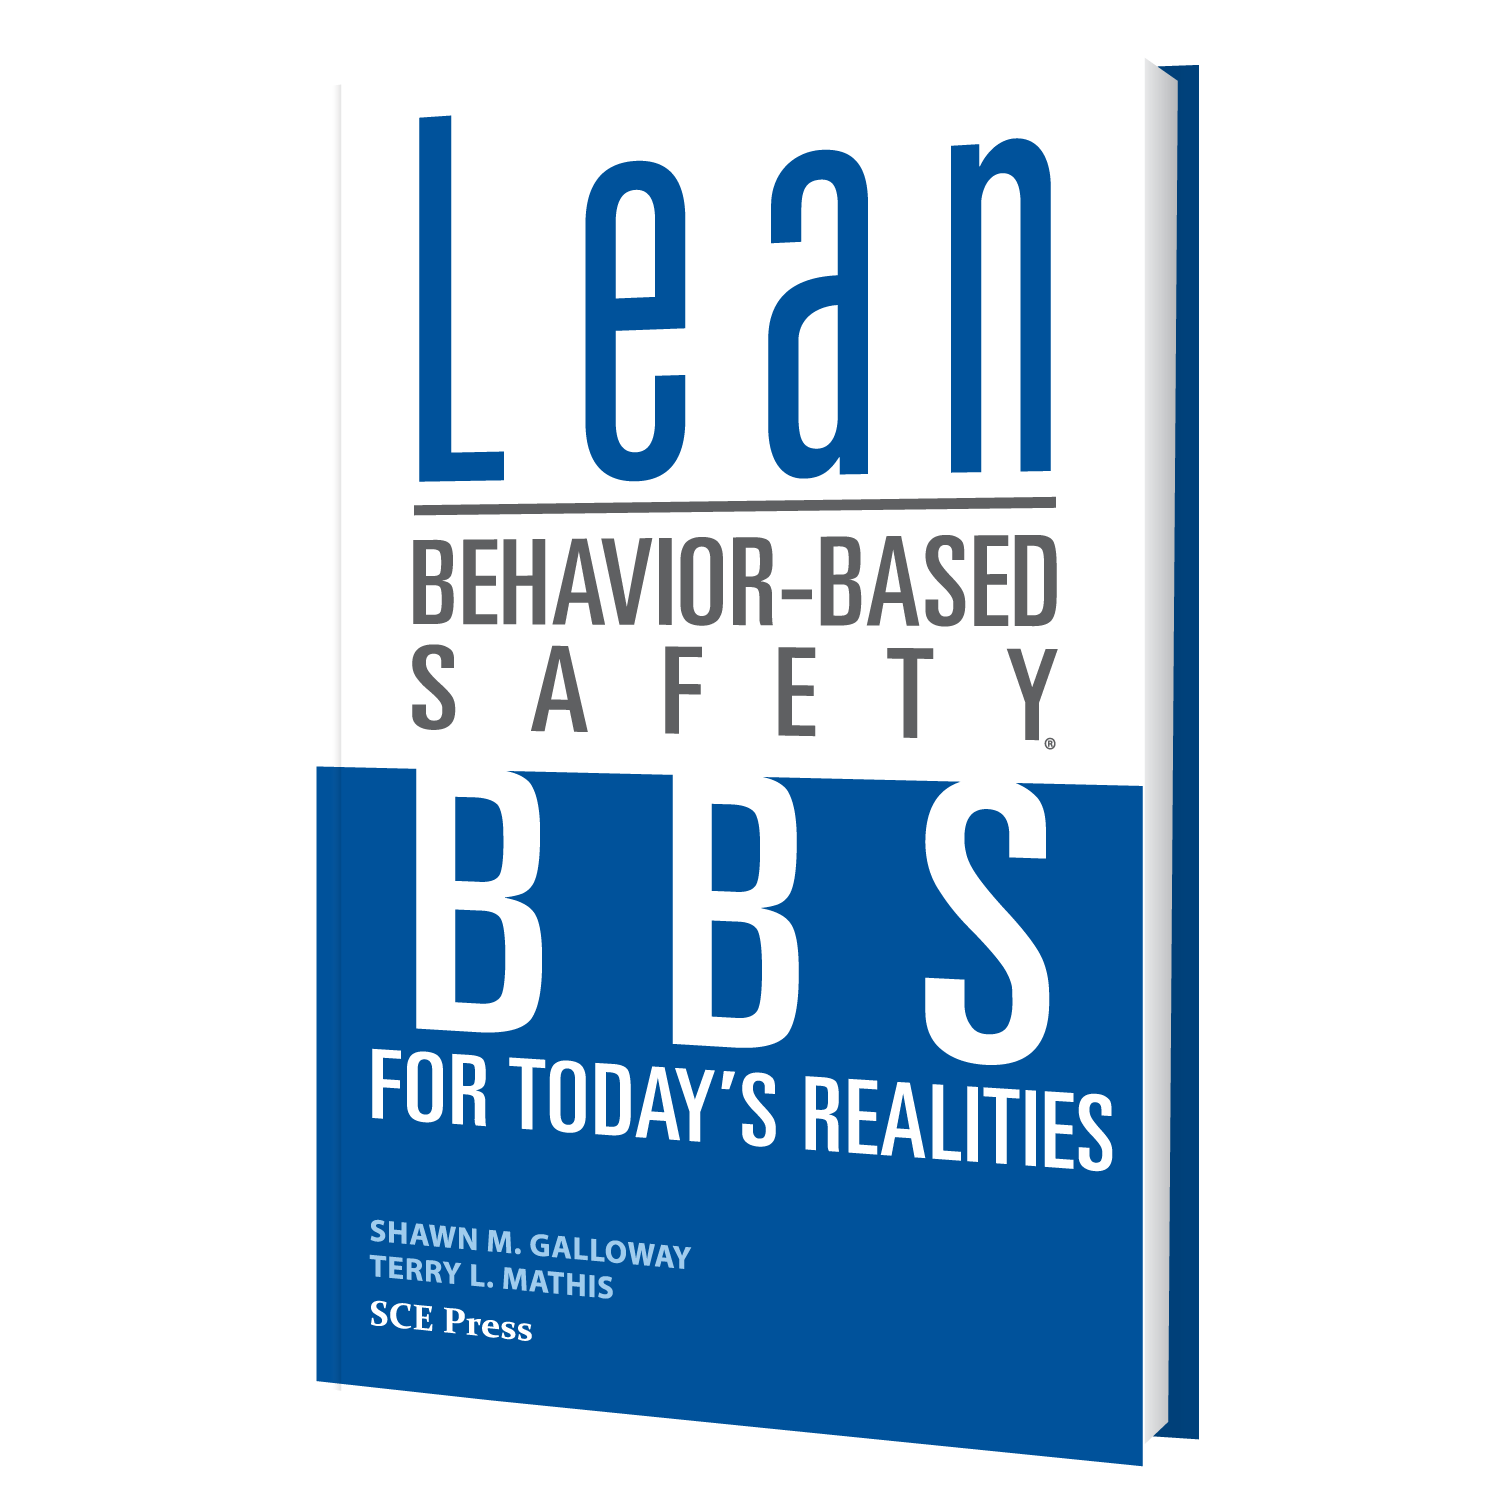 Lean Behavior-Based Safety - BBS for Today's Realities